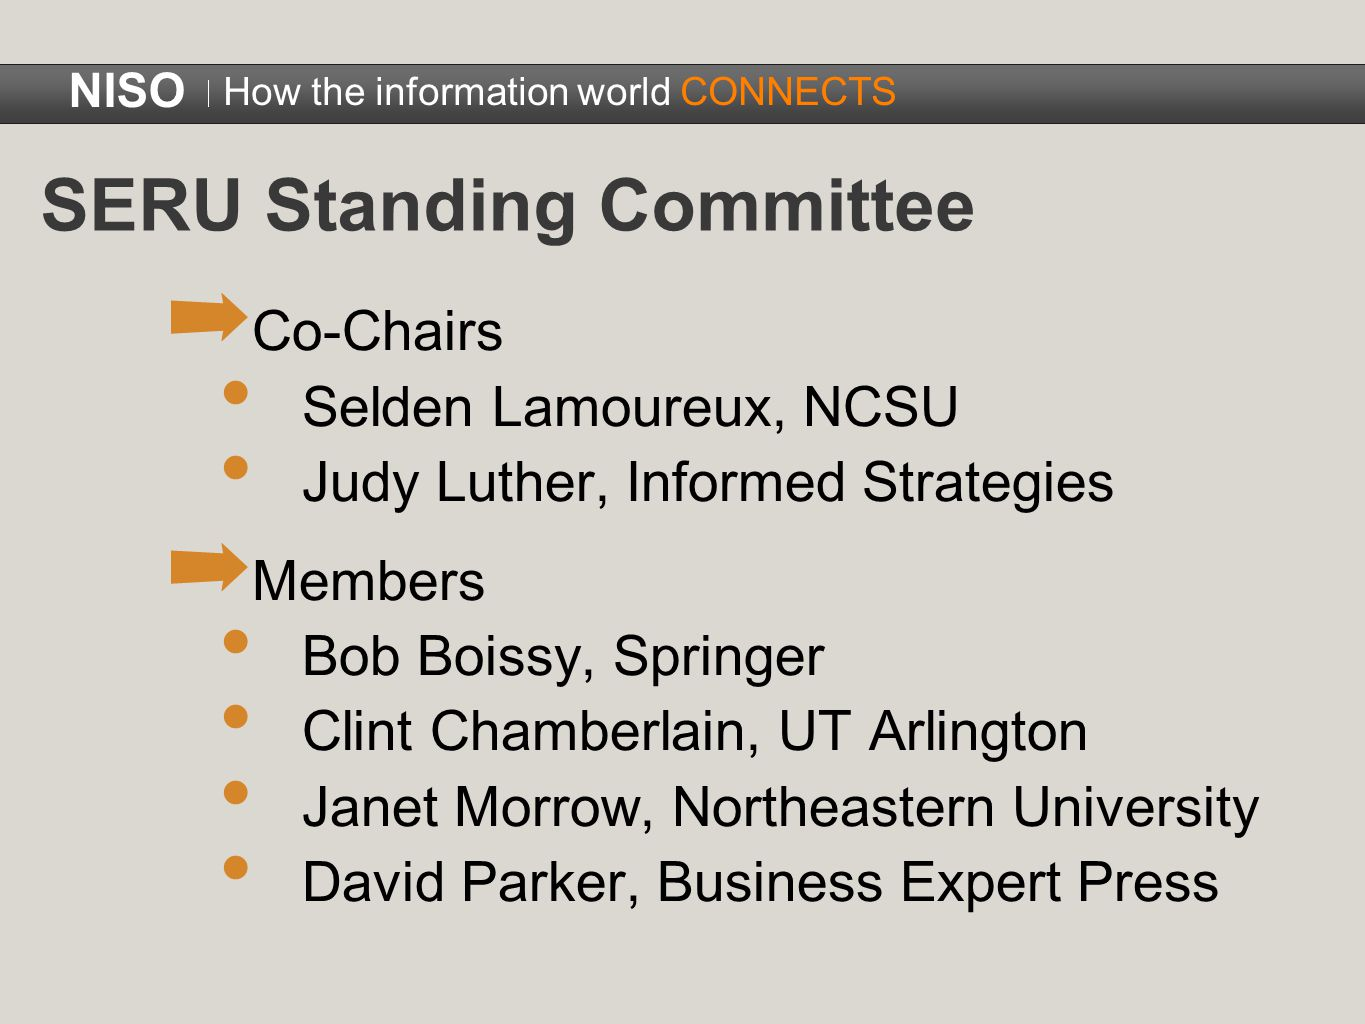 SERU Standing Committee ➡ Co-Chairs Selden Lamoureux, NCSU Judy Luther, Informed Strategies ➡ Members Bob Boissy, Springer Clint Chamberlain, UT Arlington Janet Morrow, Northeastern University David Parker, Business Expert Press NISO How the information world CONNECTS